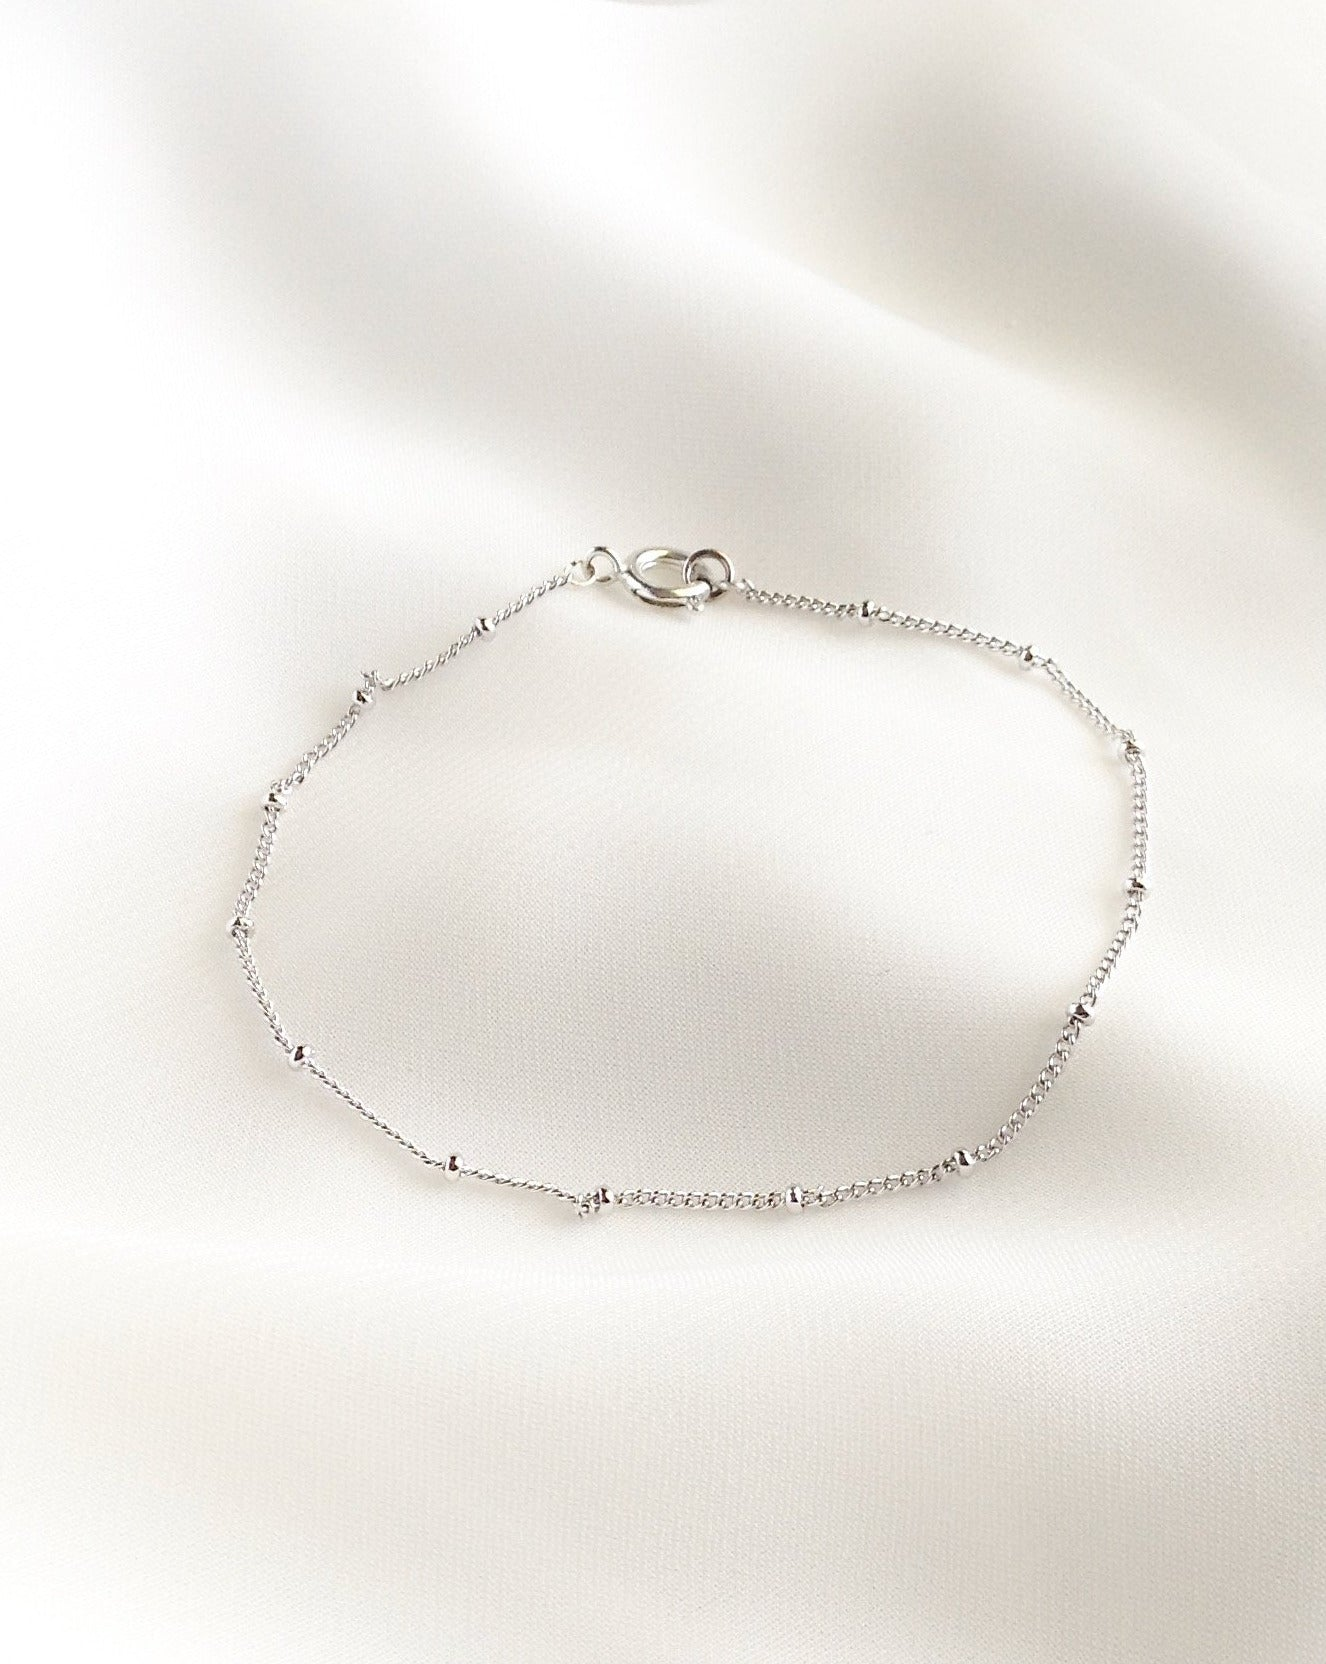 Dainty Tiny Beaded Thin Chain Bracelet in Gold Filled or Sterling Silver | Simple Elegant Bracelet | IB Jewelry